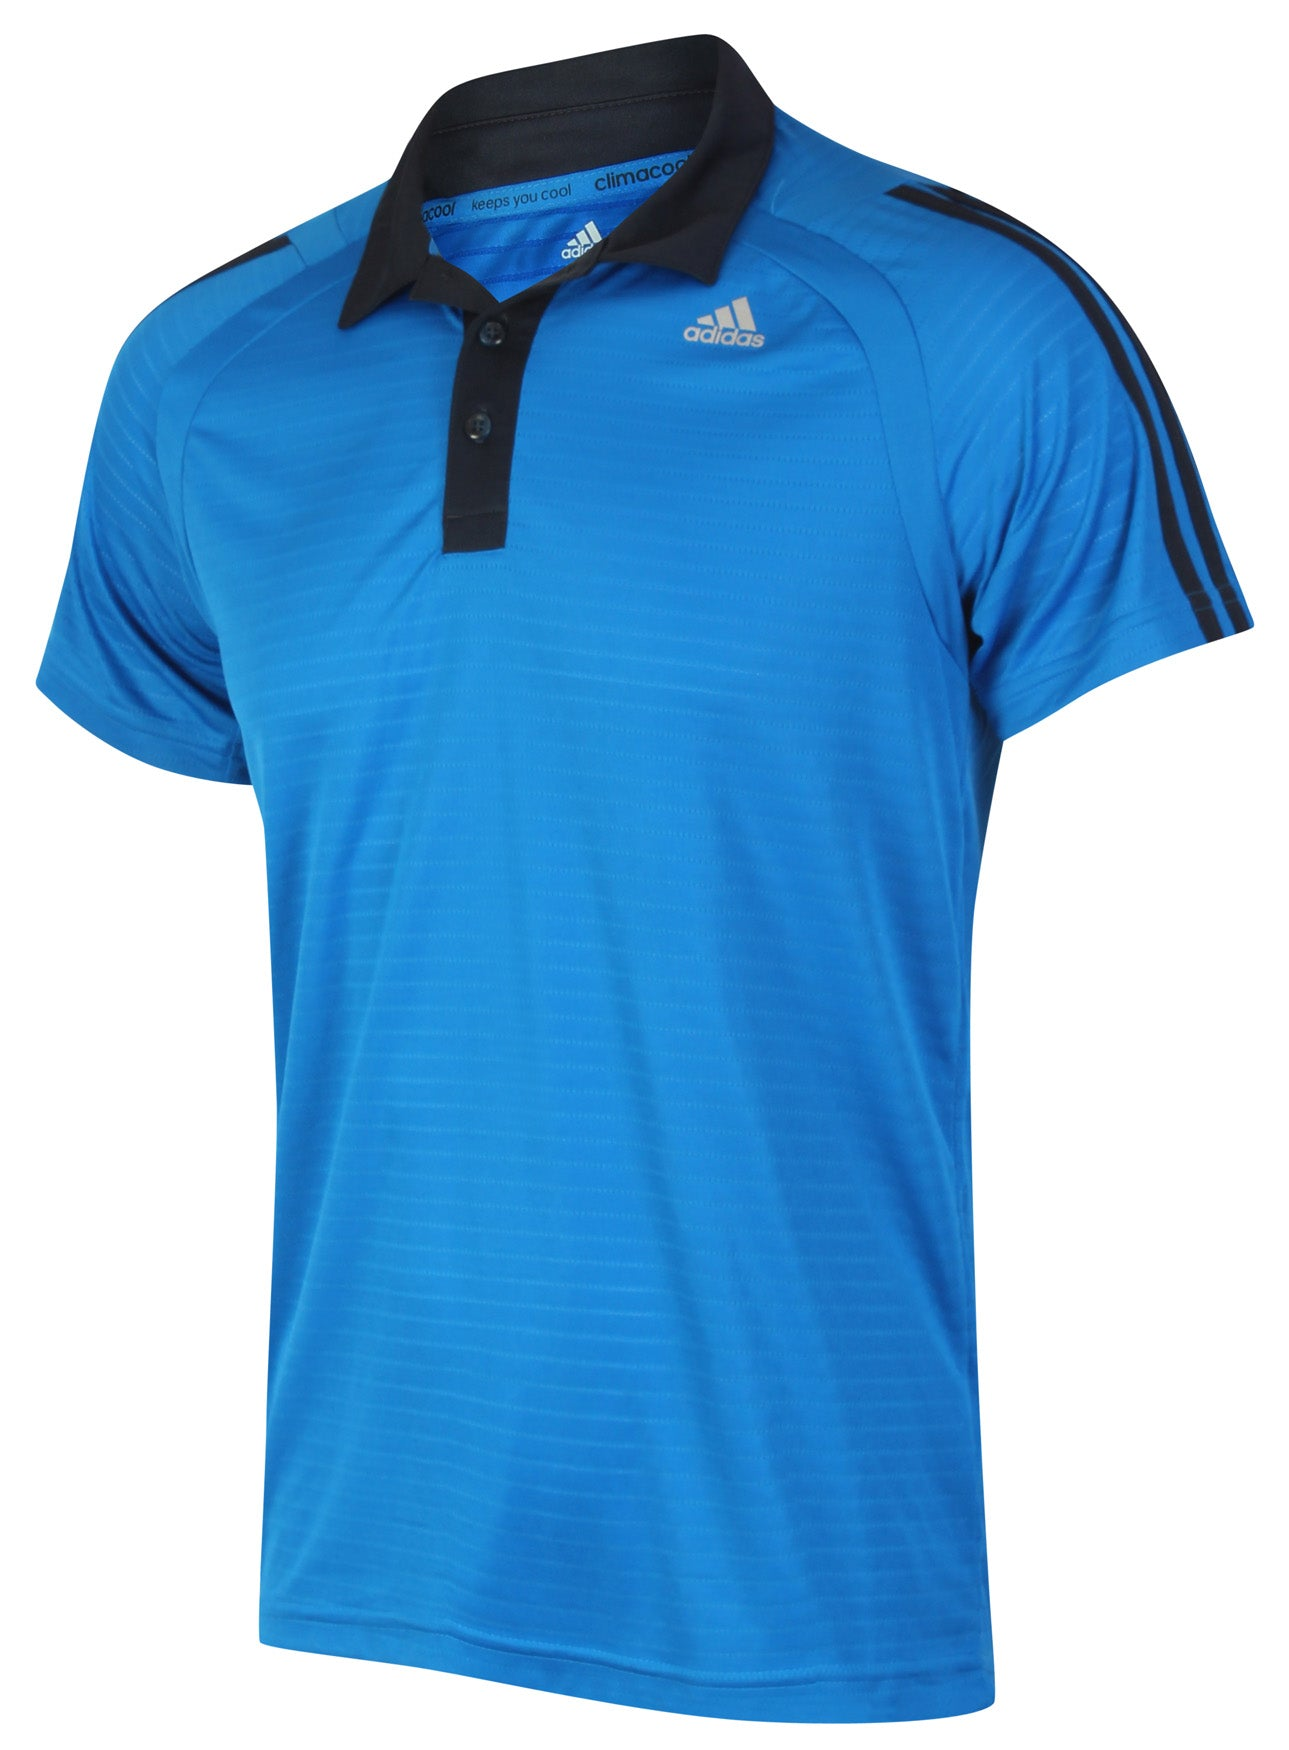 wholesale dealer 7be0b a2d60 adidas Men's Clima Lightweight Blue climacool Tennis Sports ...